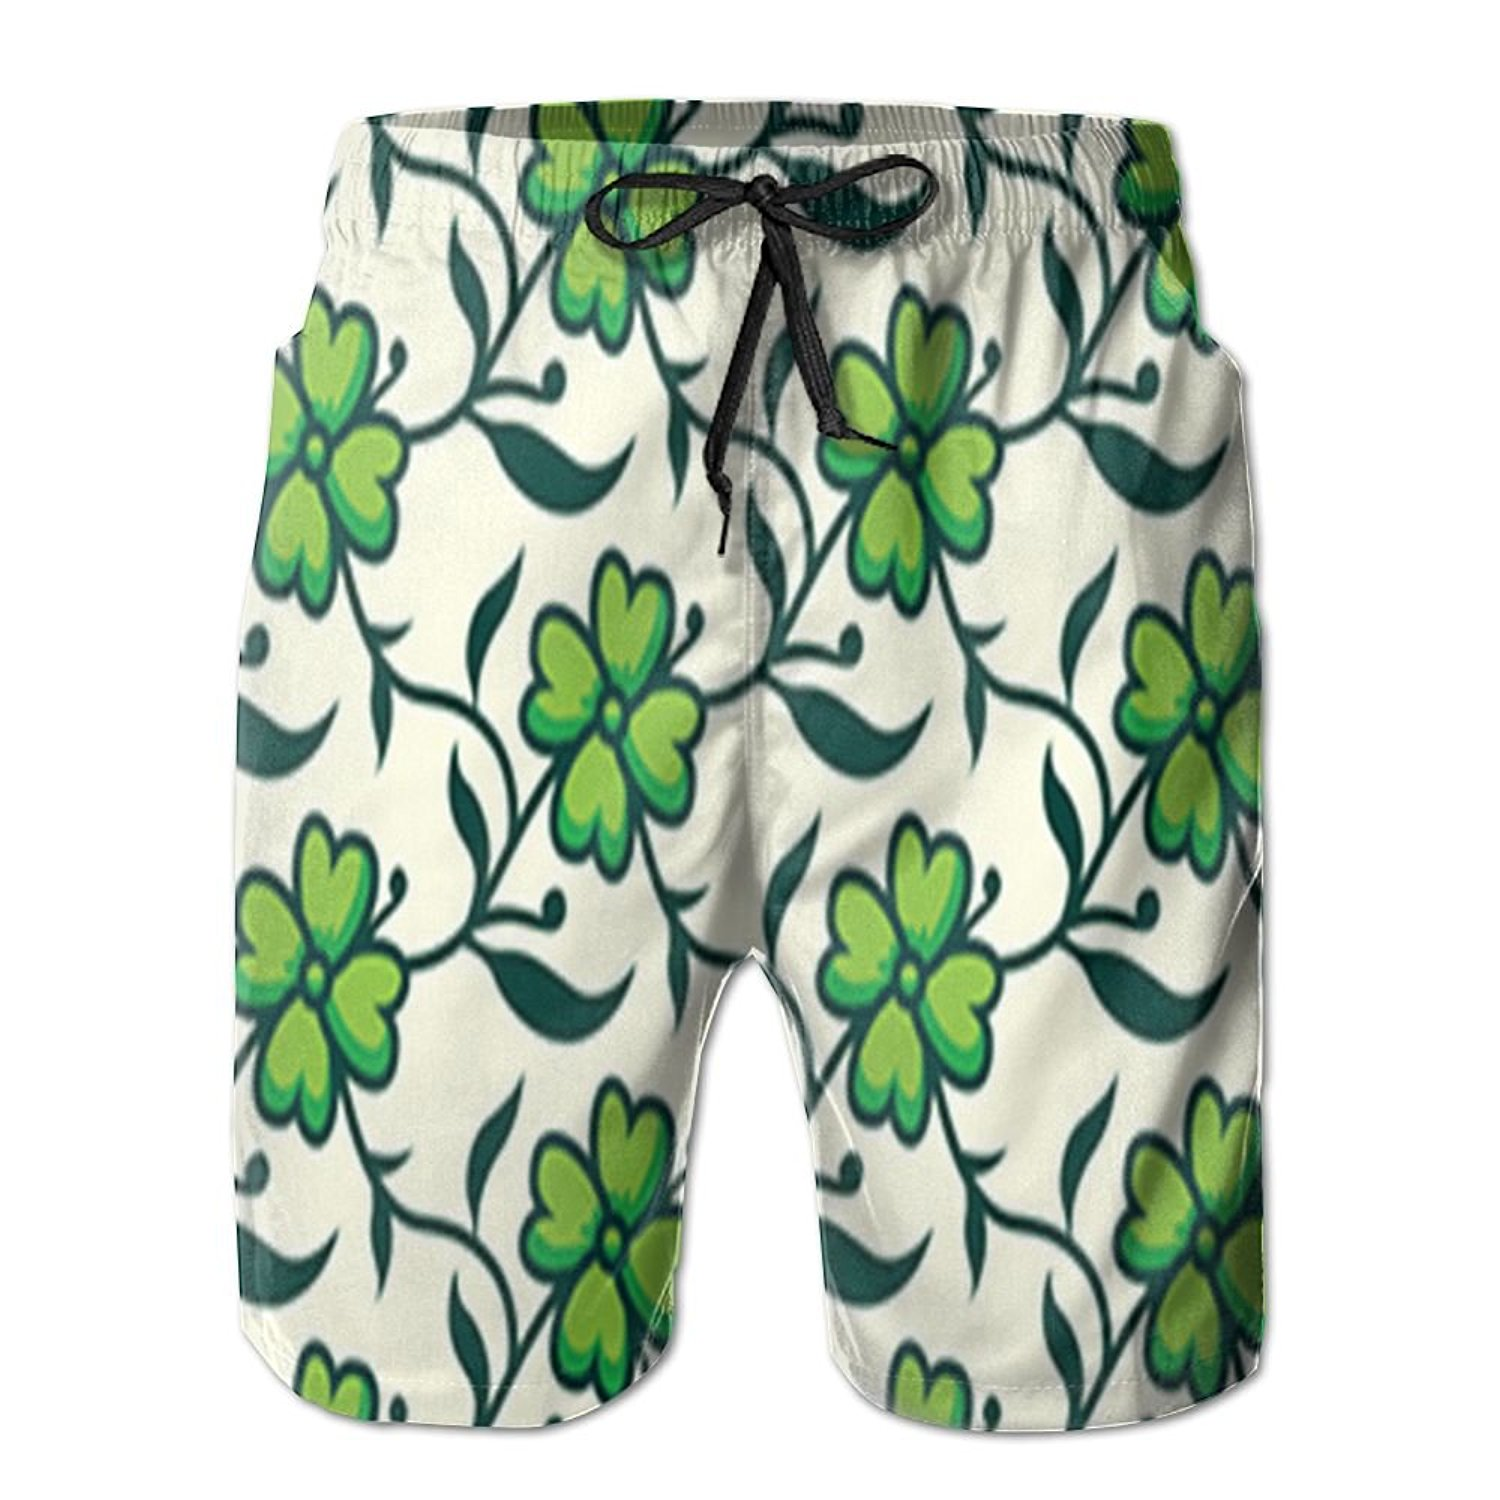 HXXUAN Mens Beach Shorts Swim Trunks Colorful Ballet Board Shorts with Pockets